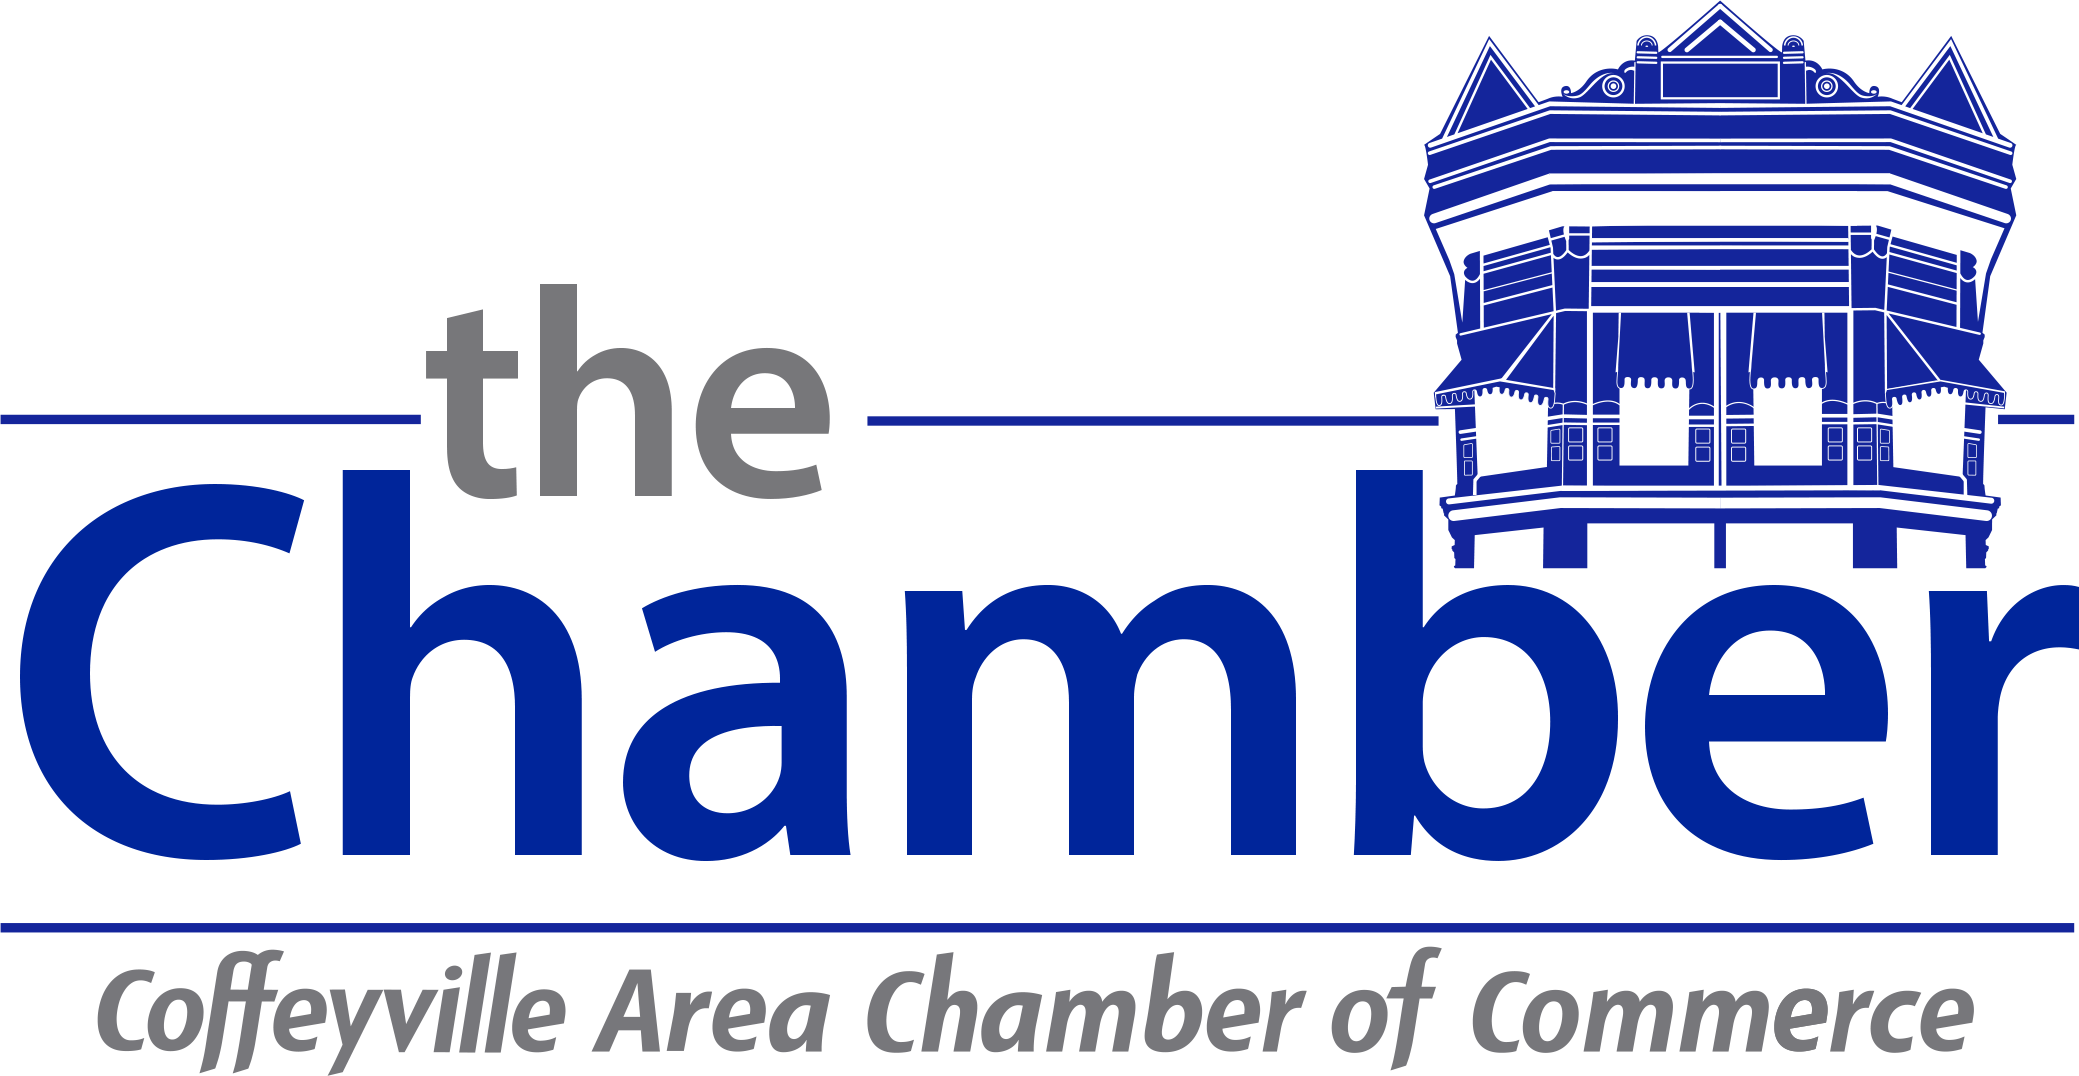 Coffeyville Area Chamber of Commerce